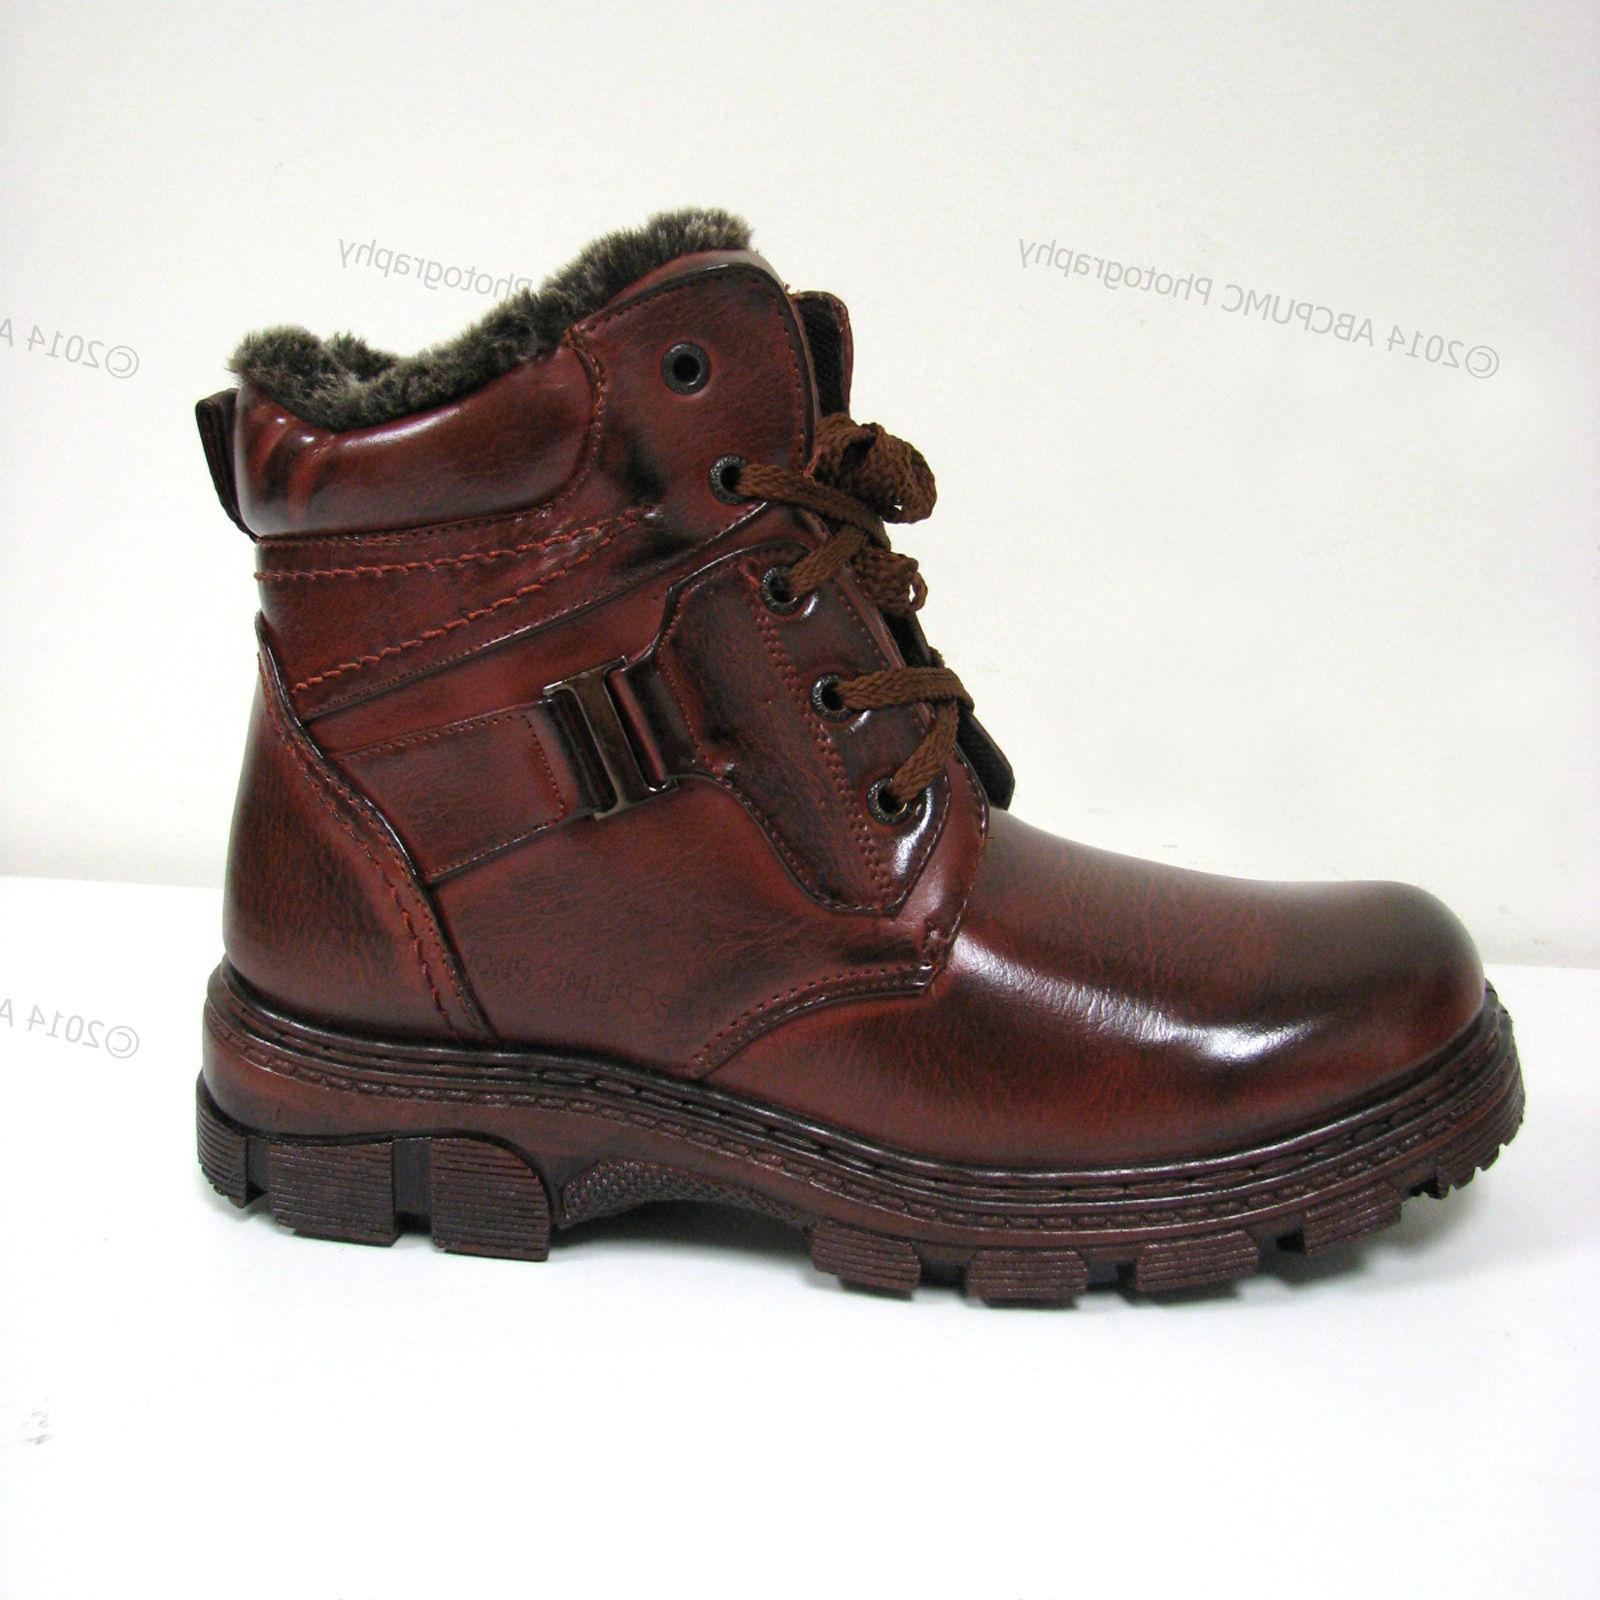 New Men's Brown Ankle Fashion Full Lined